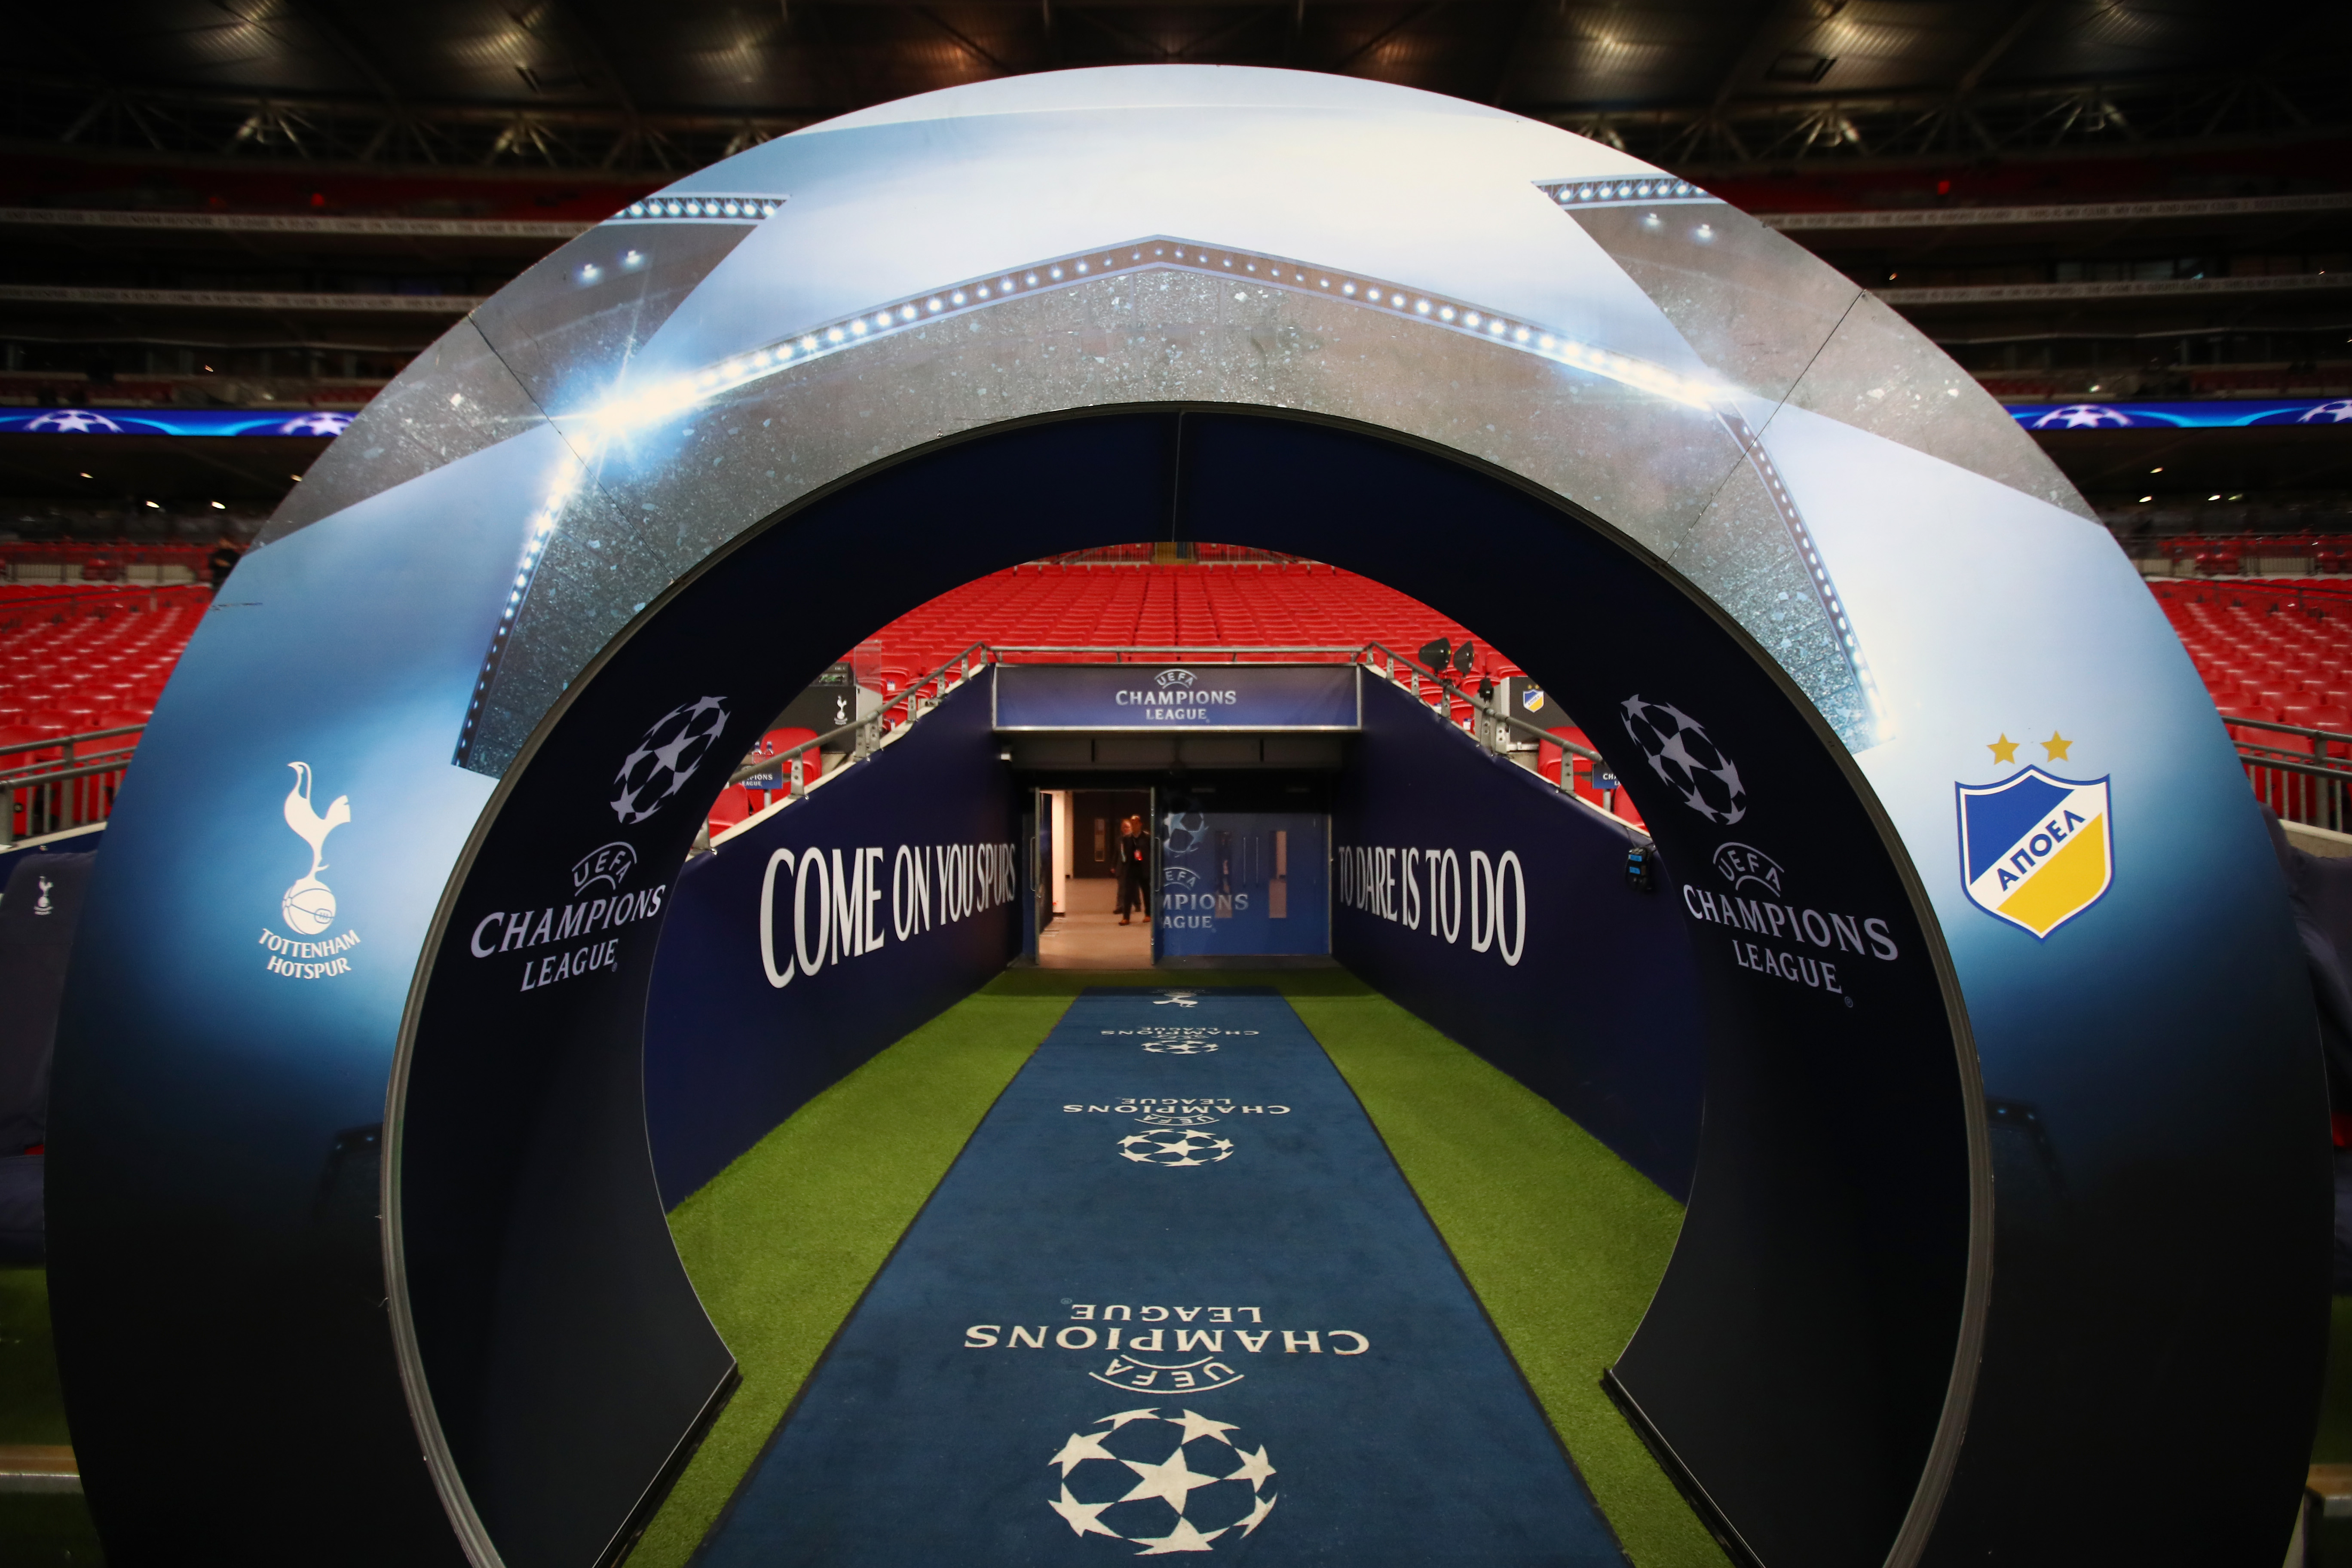 Champions League Draw Update: Champions League 2017-18